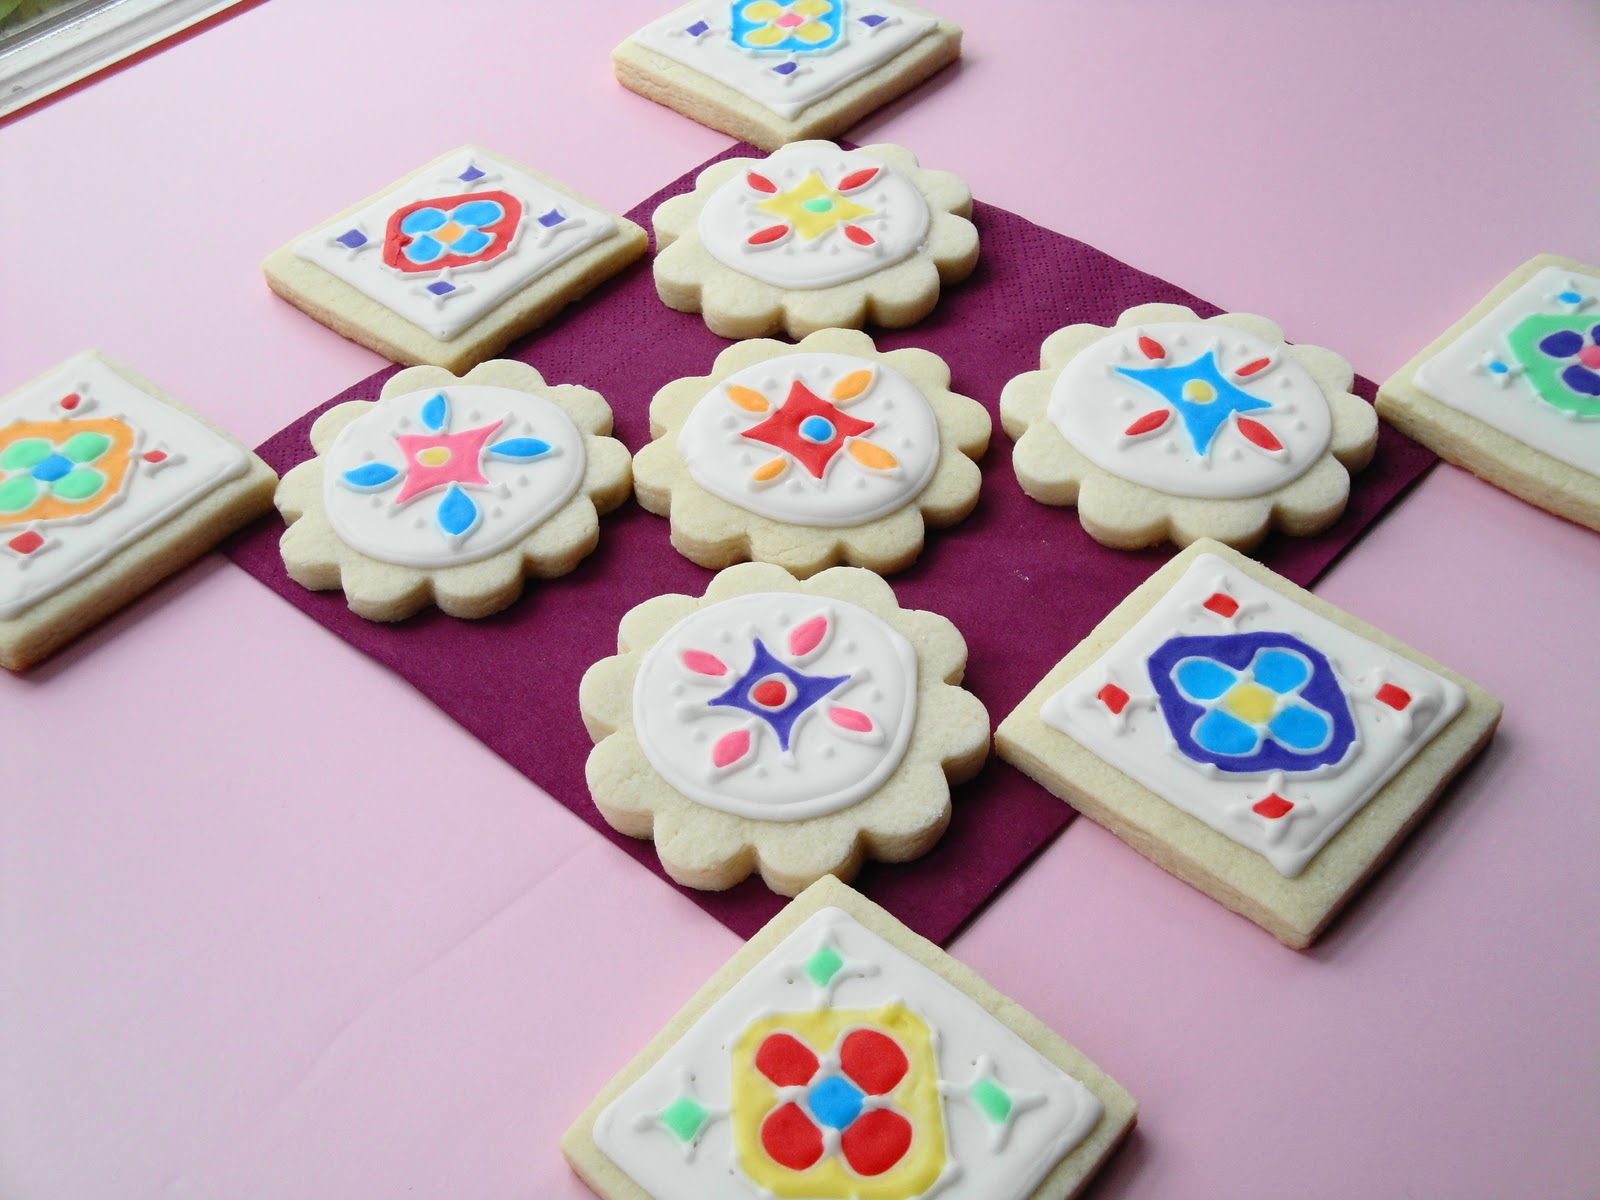 cumin and cardamom rangoli decorated sugar cookies